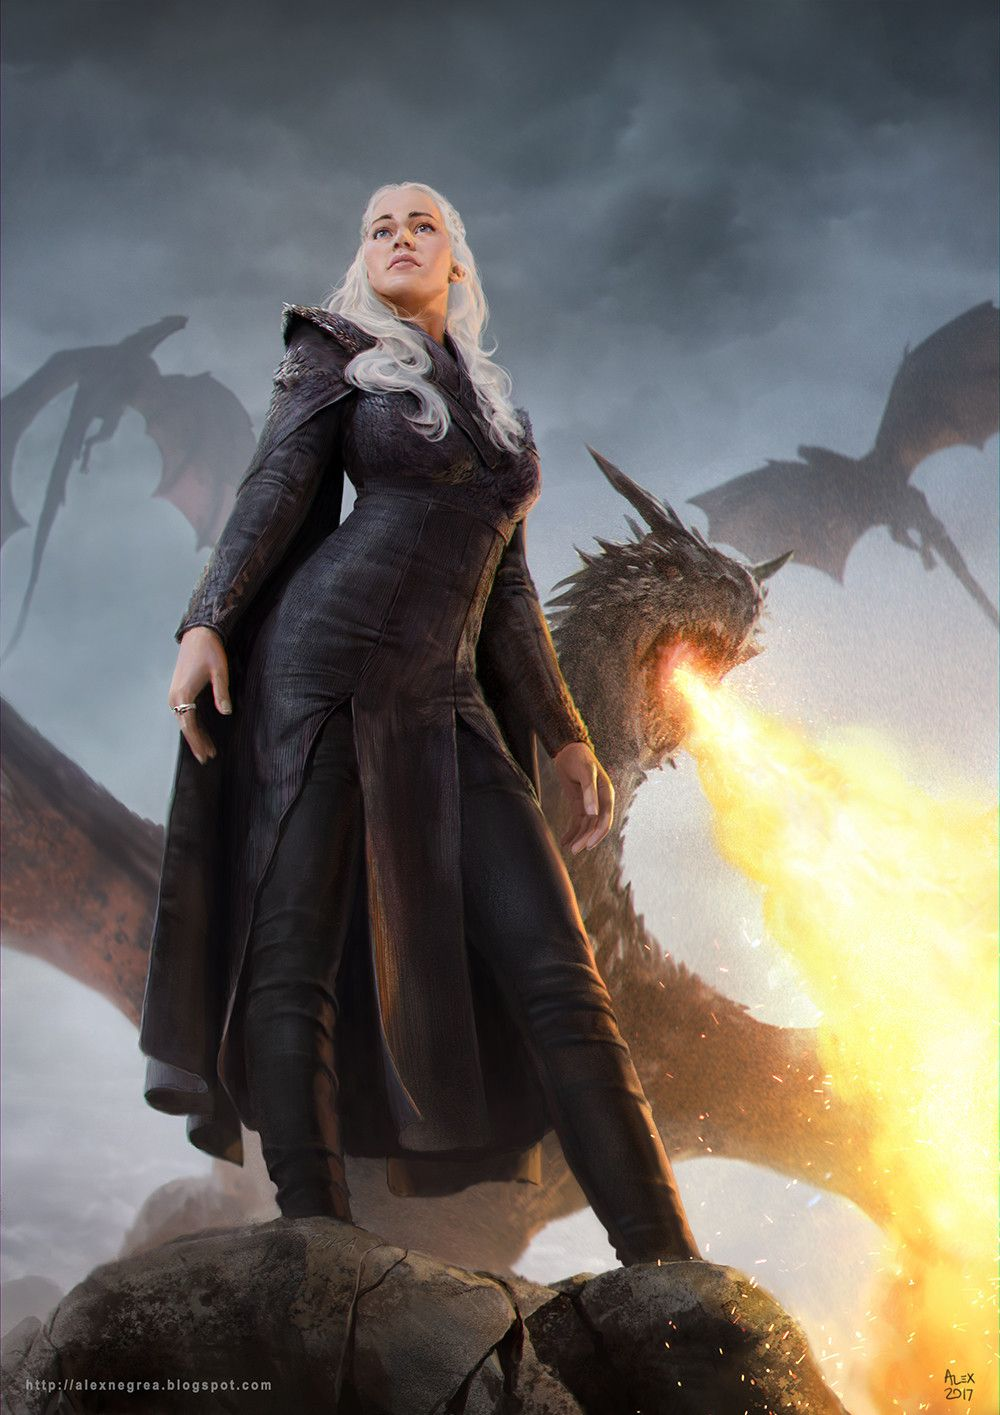 Dragons game of thrones colors - Game Of Thrones Fan Art Daenerys Targaryen Mother Of Dragons